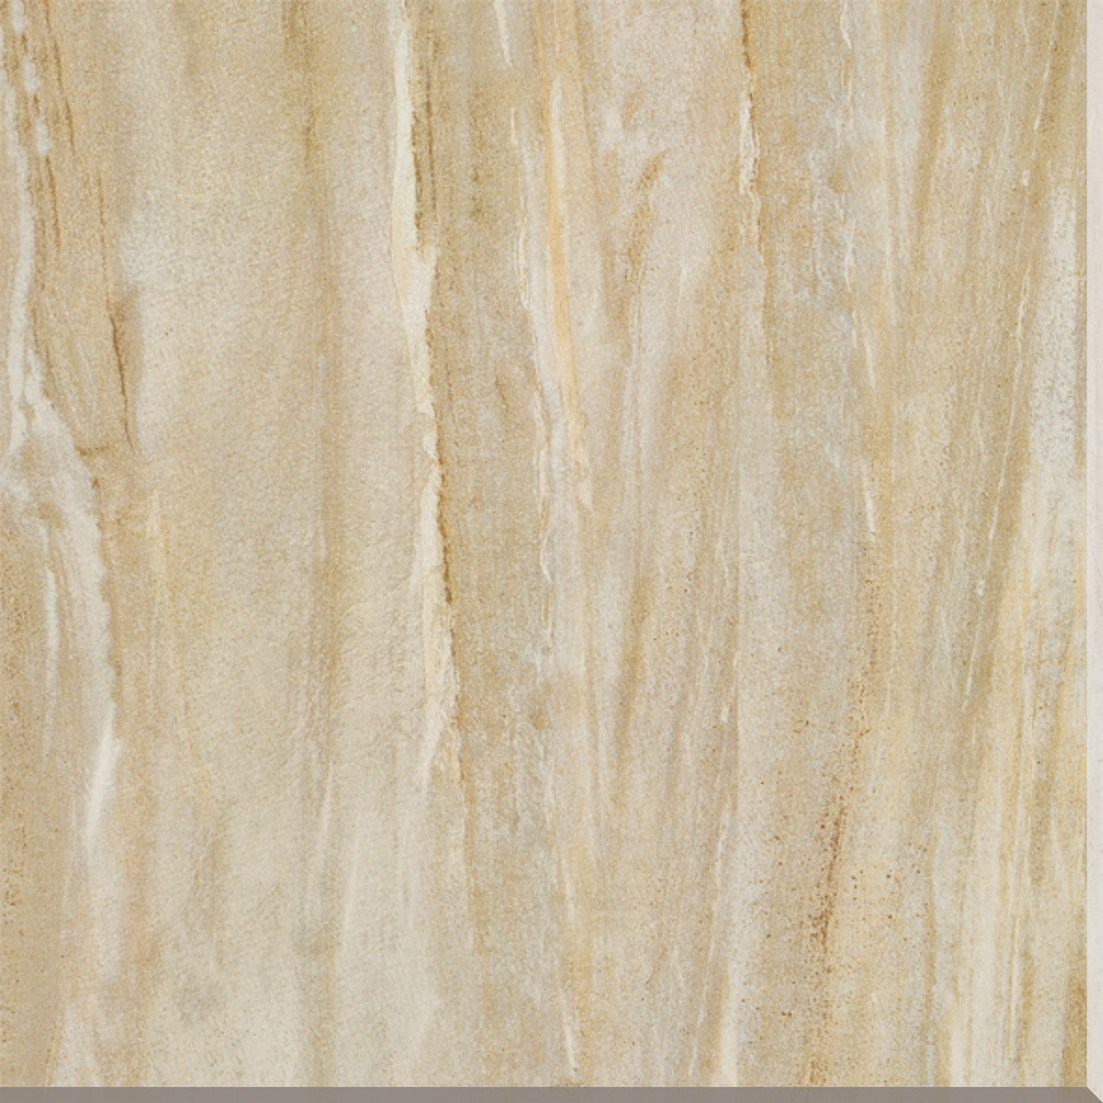 China 60 60cm rustic porcelain tile glazed tiles 6j002 for Ceramic tile